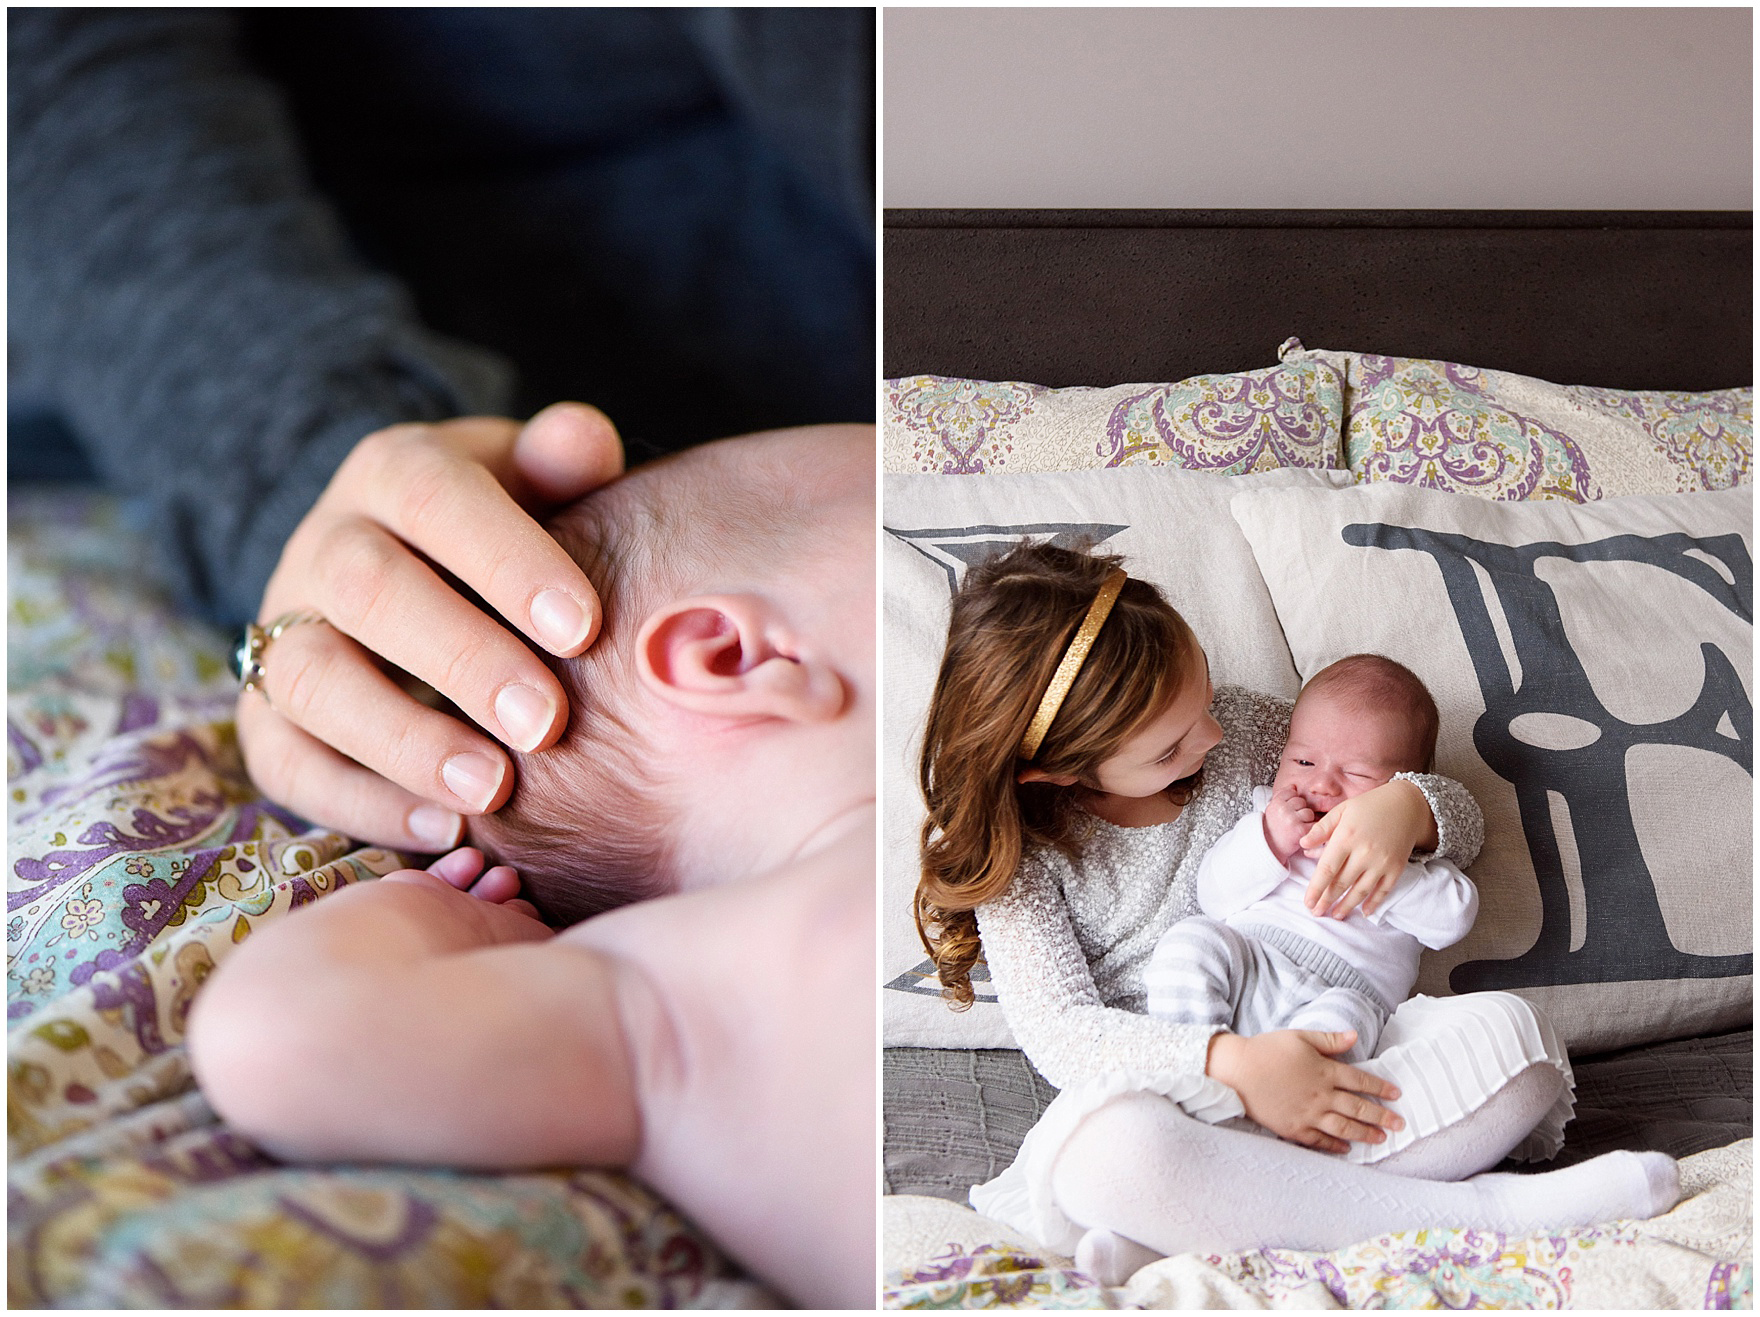 Mom cradles baby's head during a Lincoln Park lifestyle newborn session in Chicago.